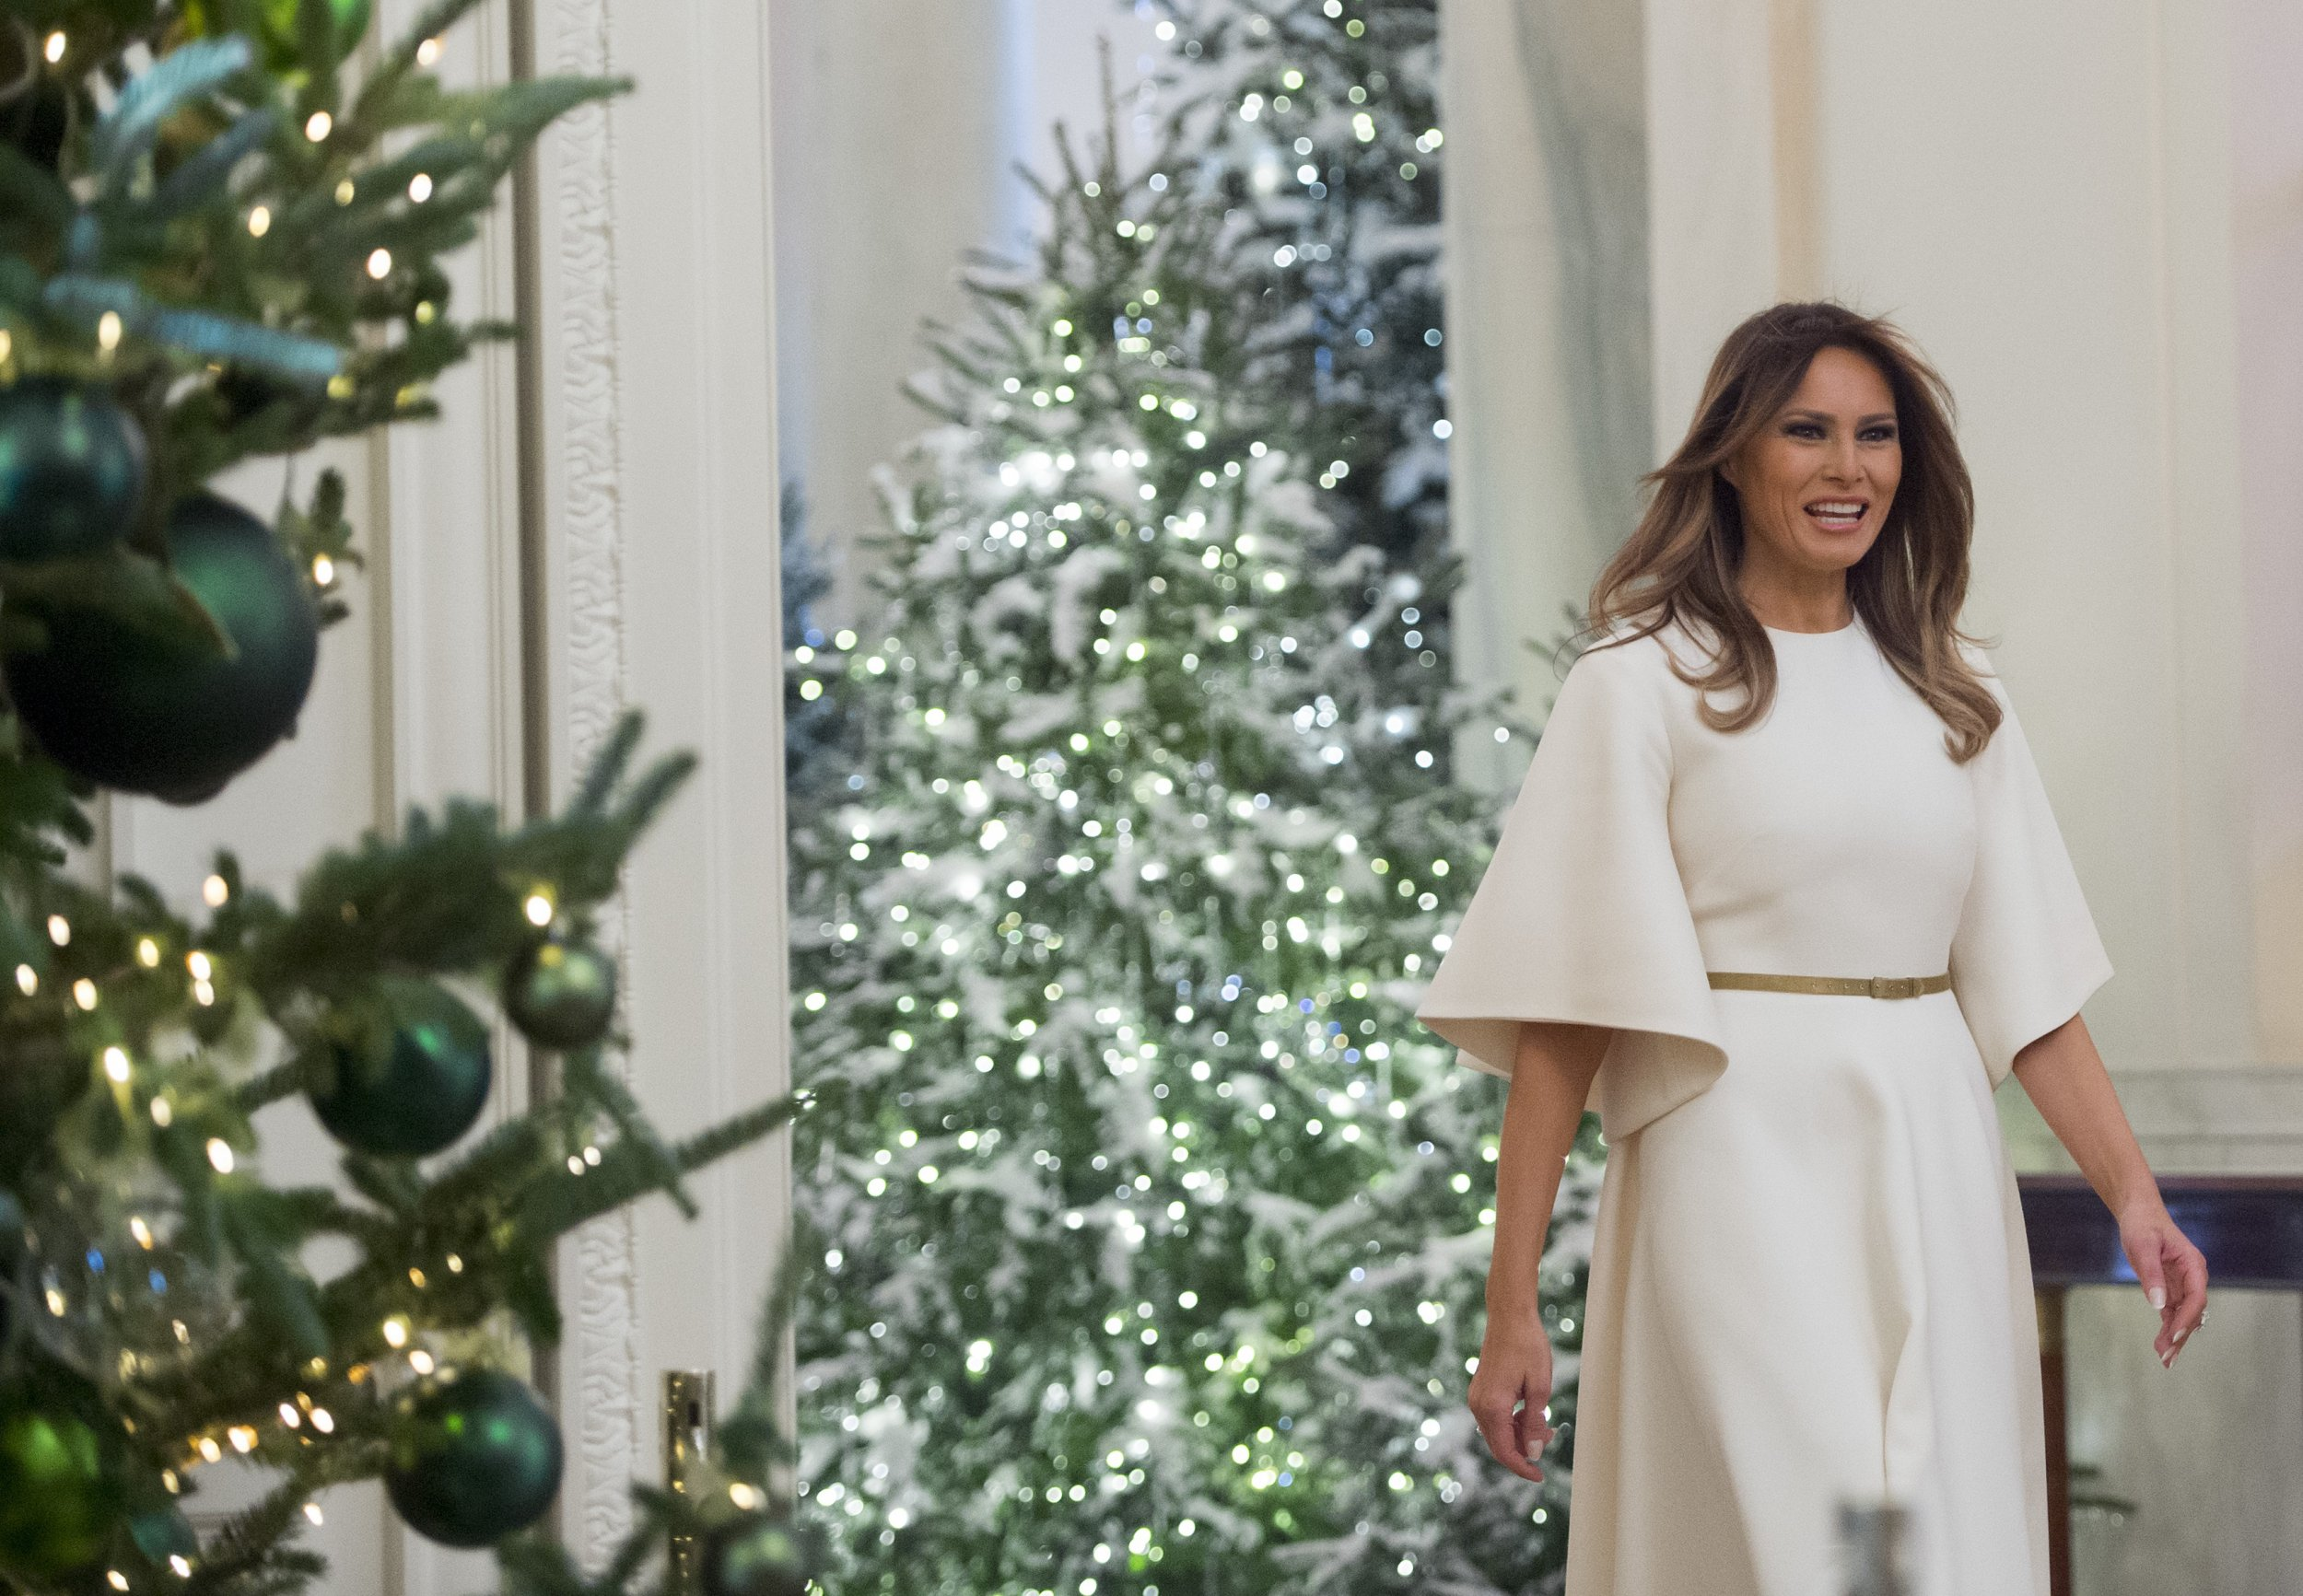 Whitehouse Christmas Decorations.Melania Trump S Christmas Decorations At The White House